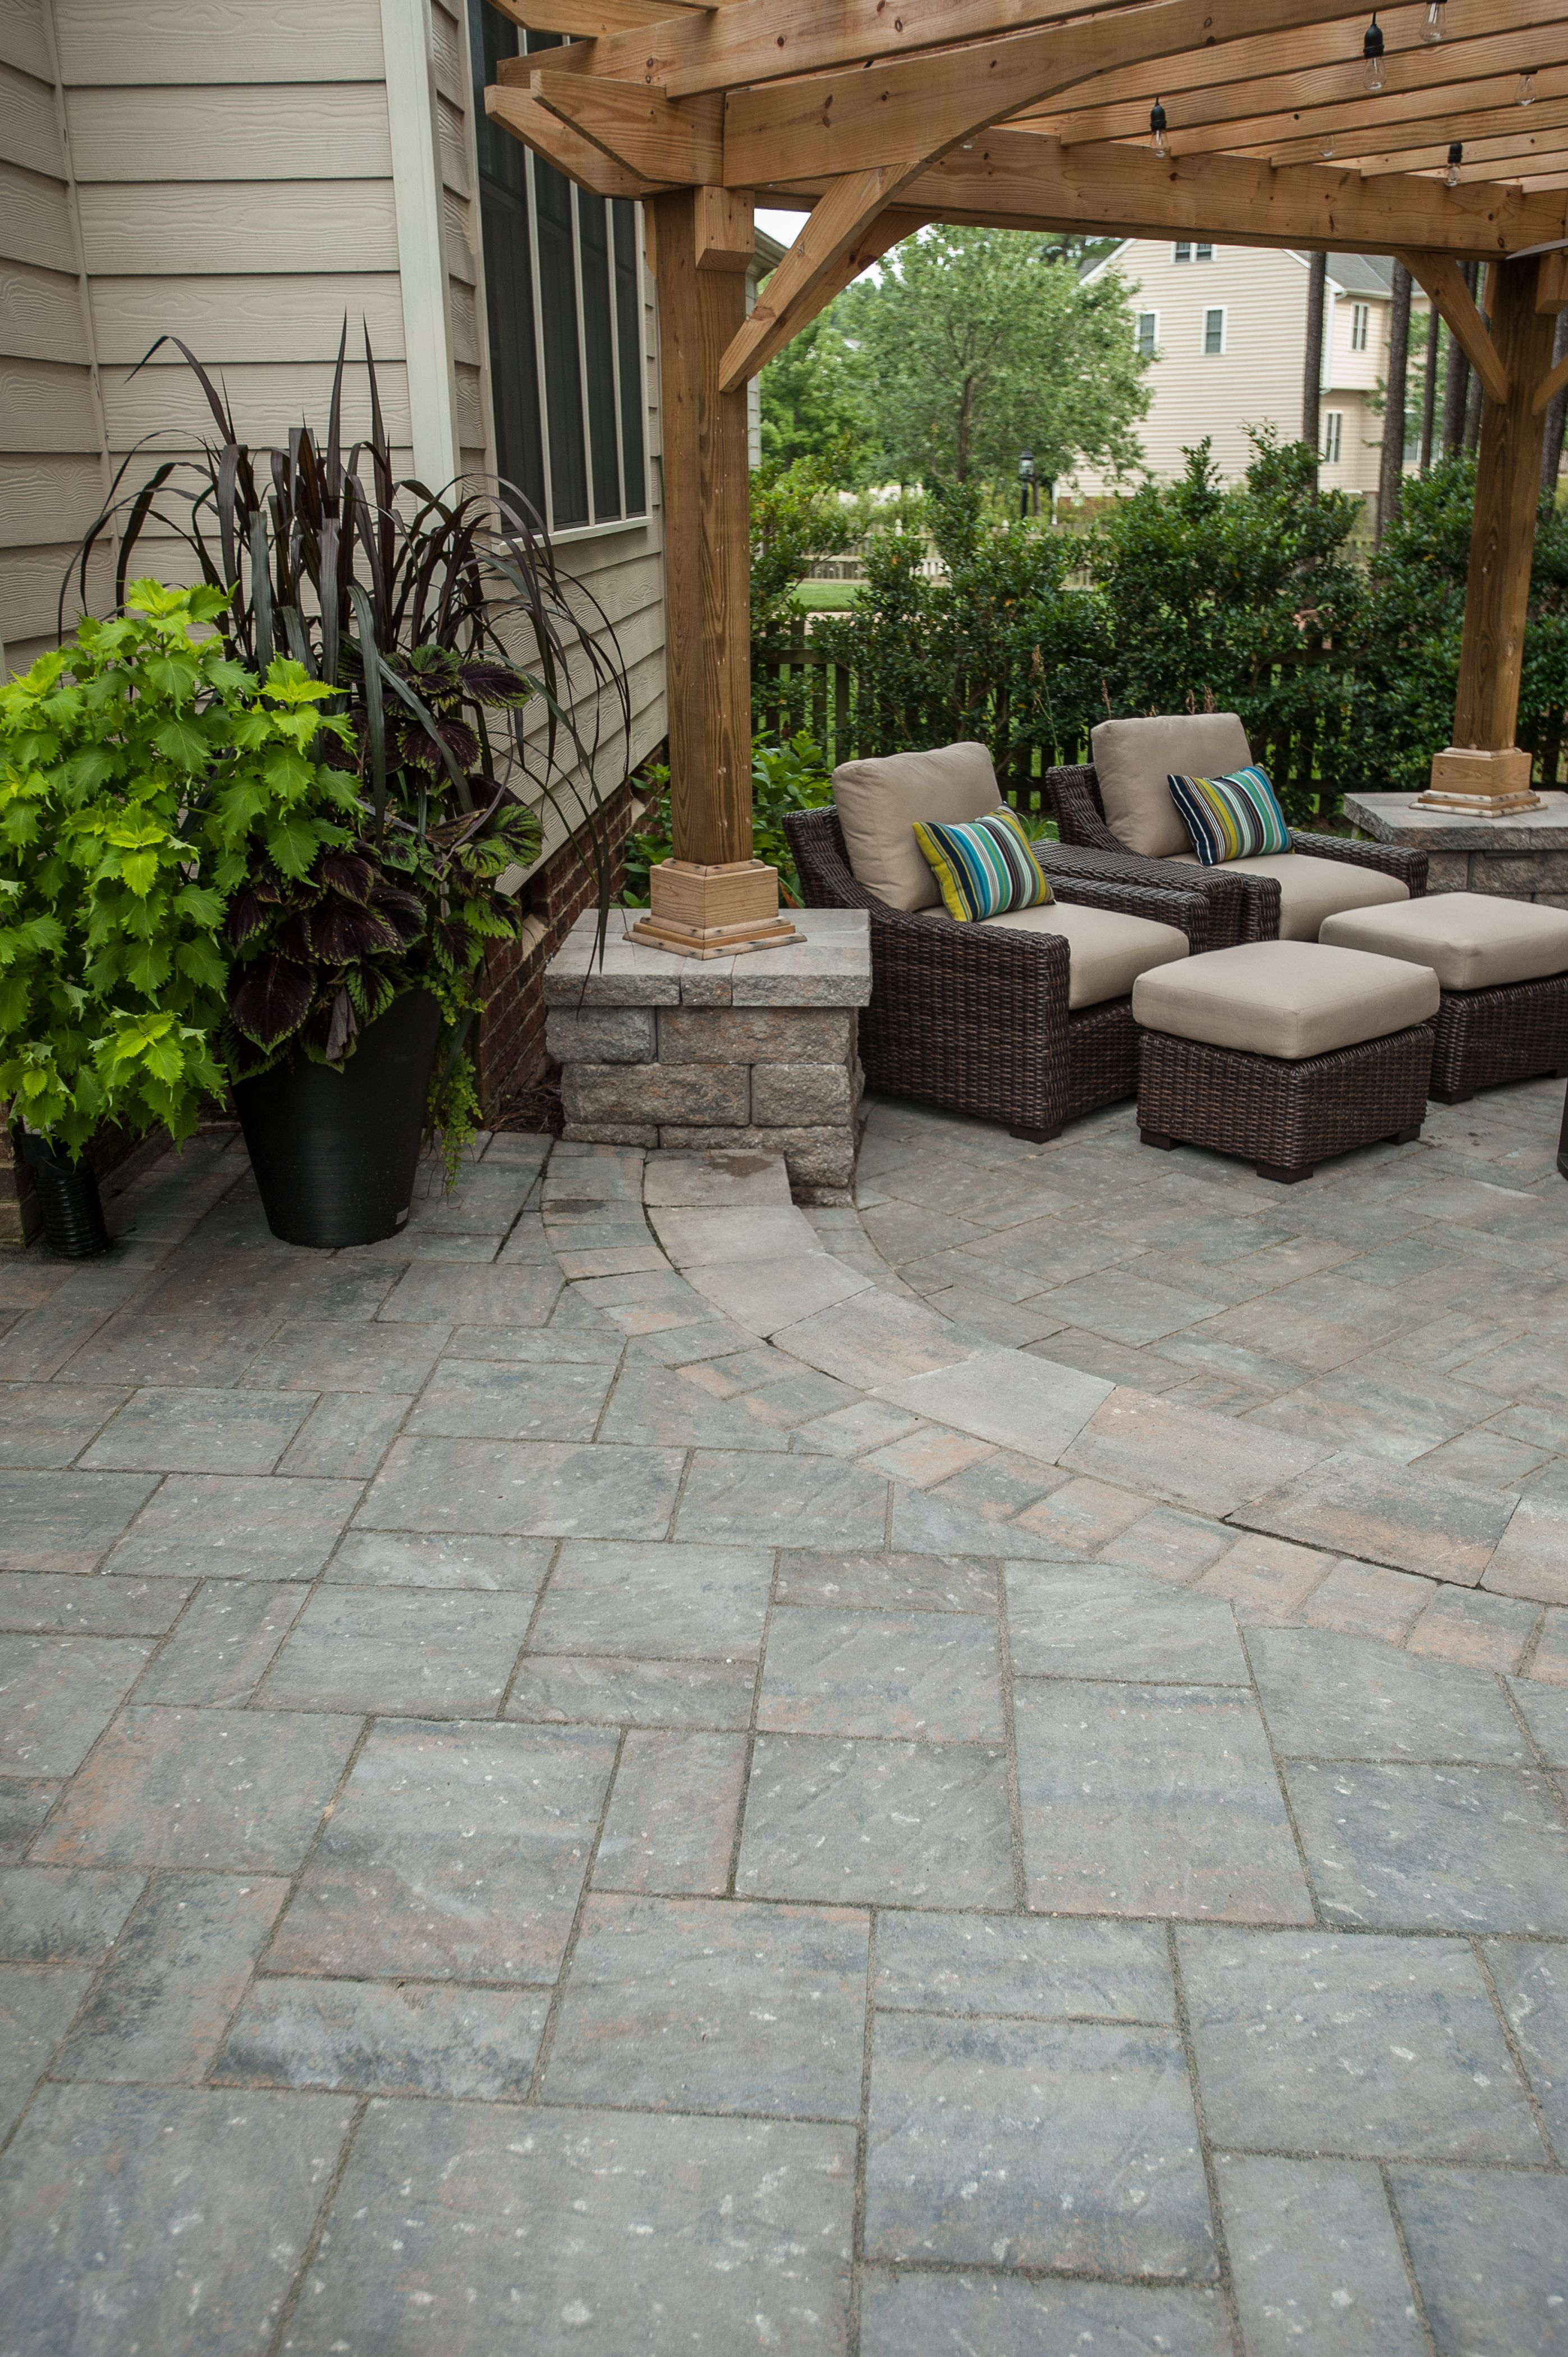 Chatham Xl Pavers Have A Natural Stone Texture And Make For An Elegant Patio Design Porch Design Outdoor Living Space Design Patio